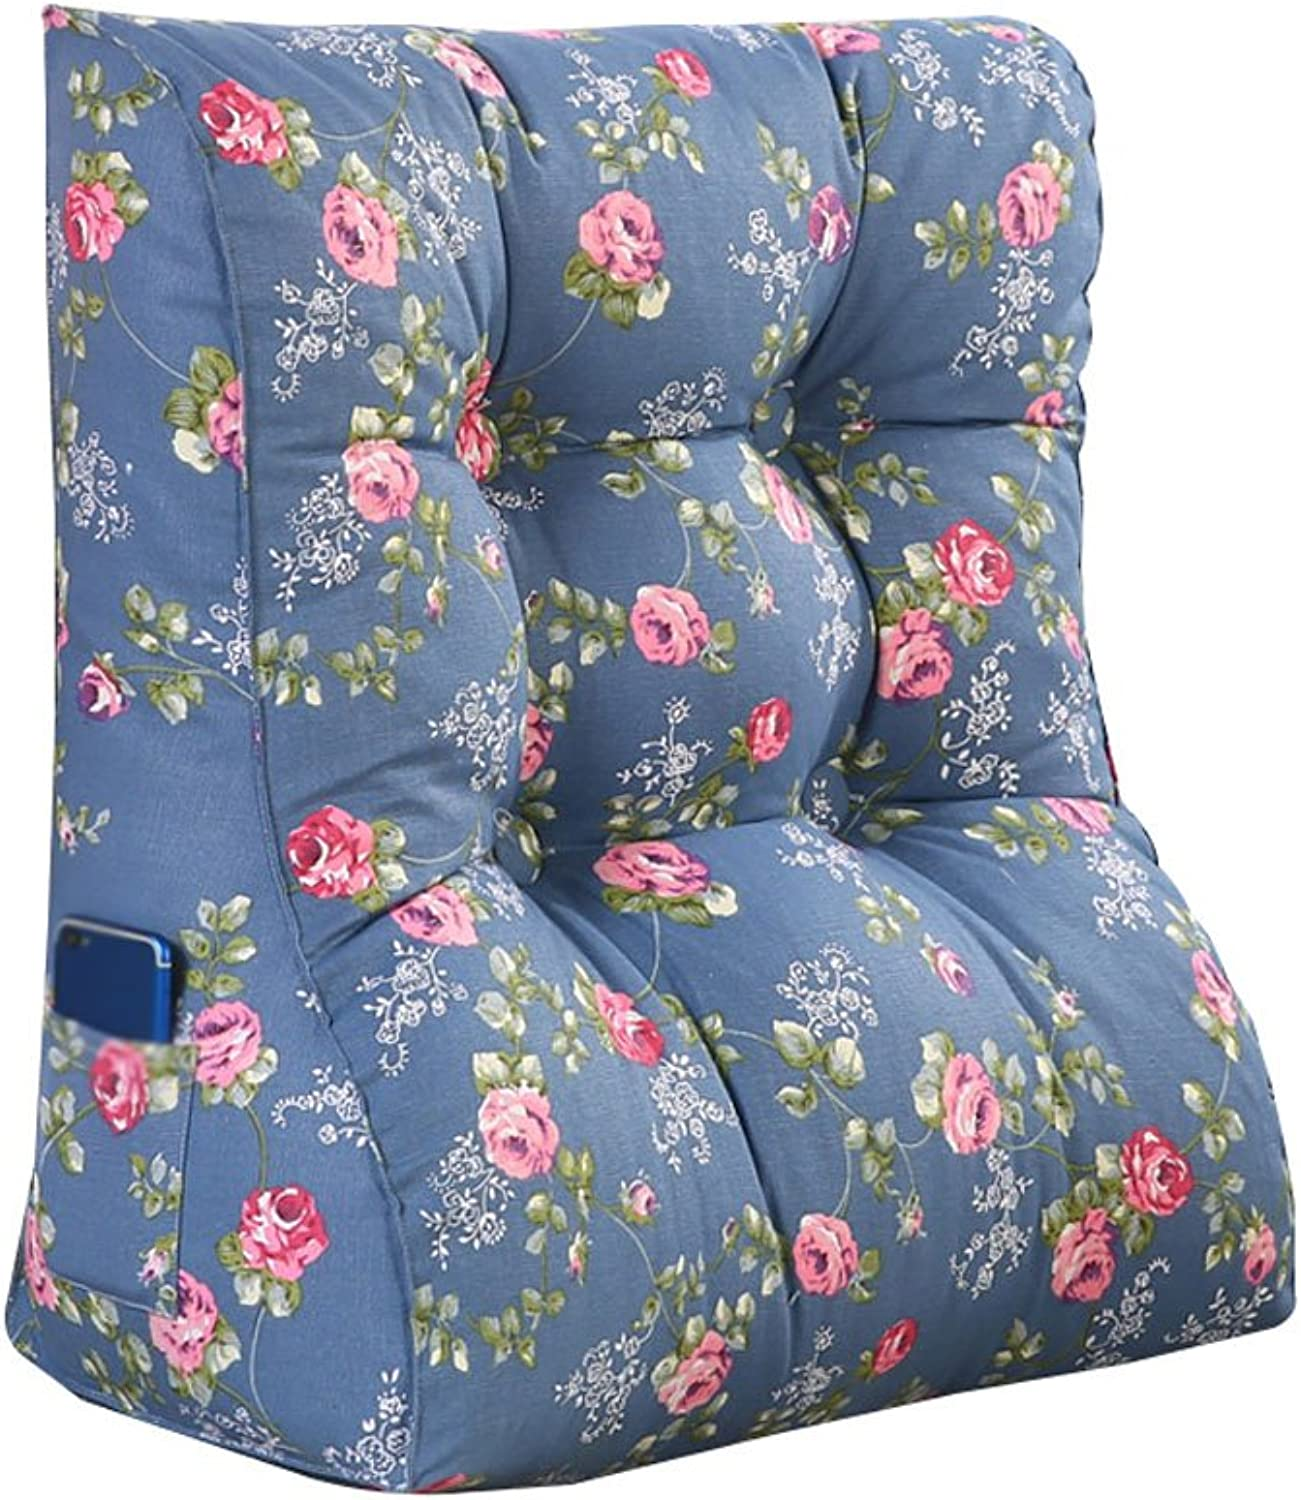 DDSS Bed cushion Bedside Bed Triangle Cushion PP Cotton Pillow Backrest Lumbar Pillow Predection Waist Neck Guard Sofa Back bluee Washable  -  (Size   45cm30cm55cm)